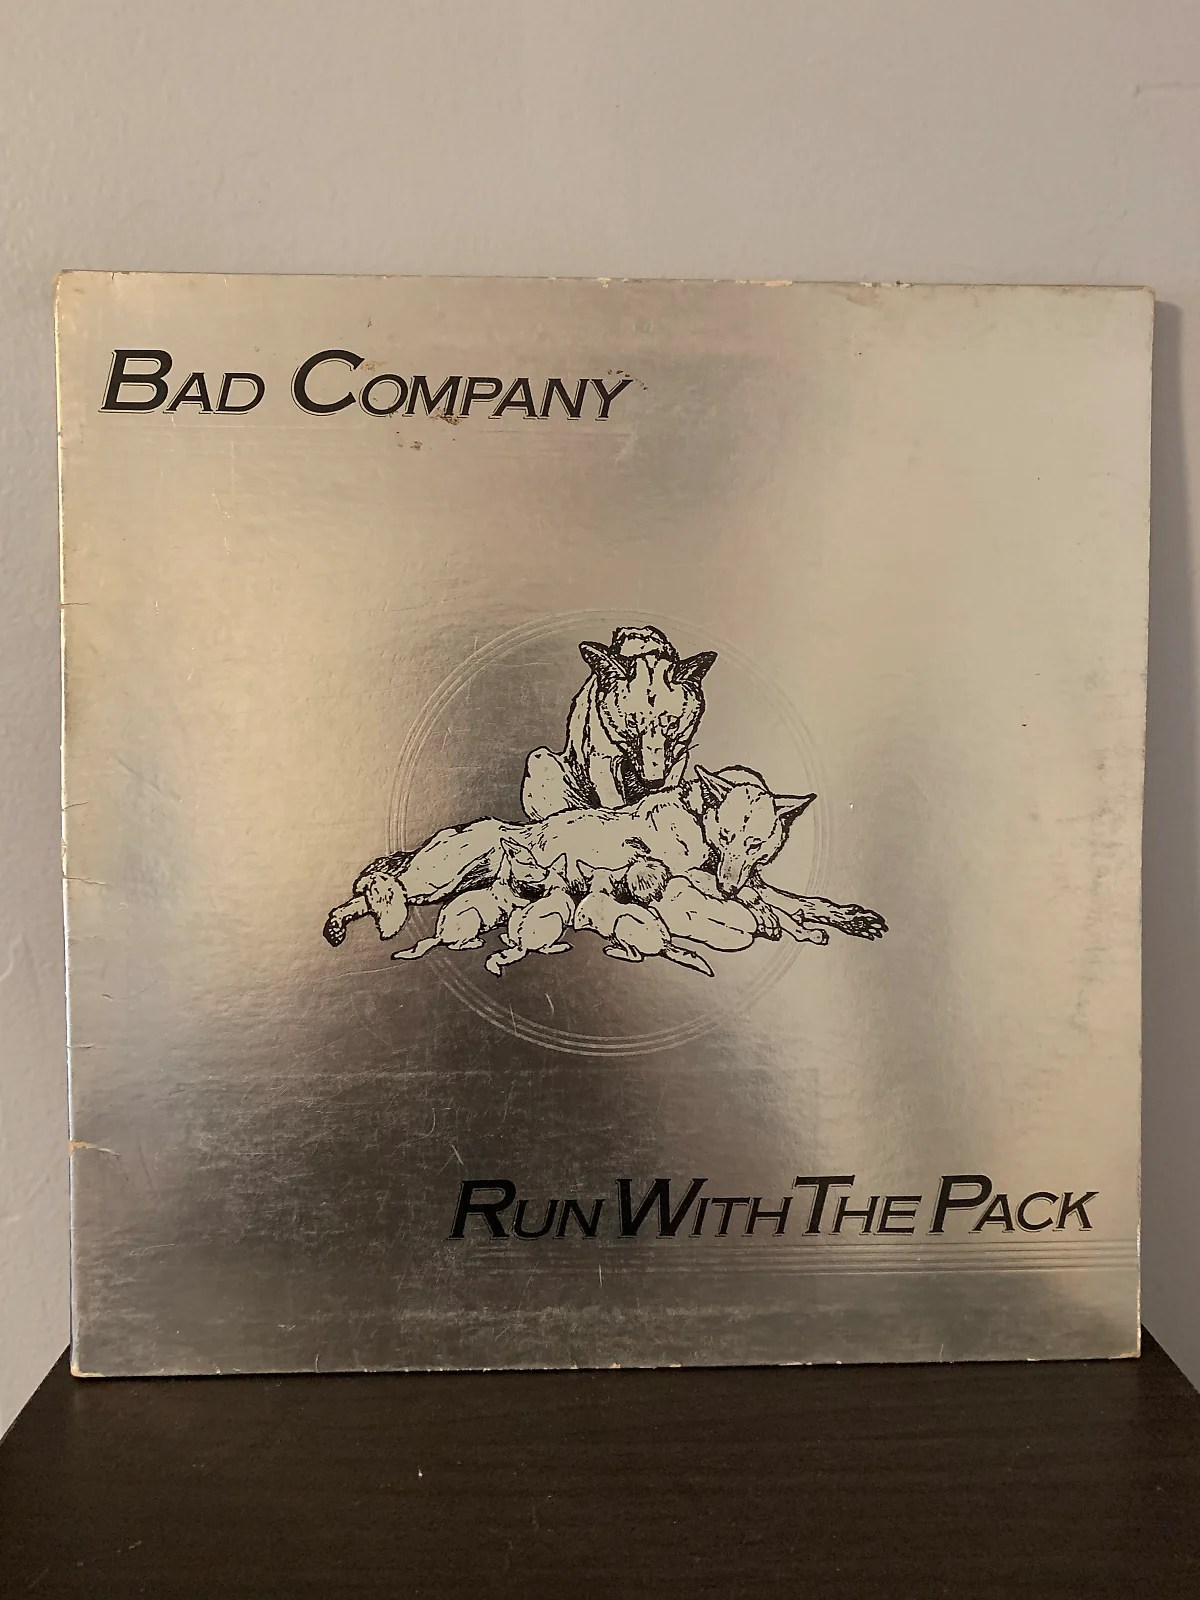 Vinylboden Bad Bad Company 3 Run With The Pack Vinyl